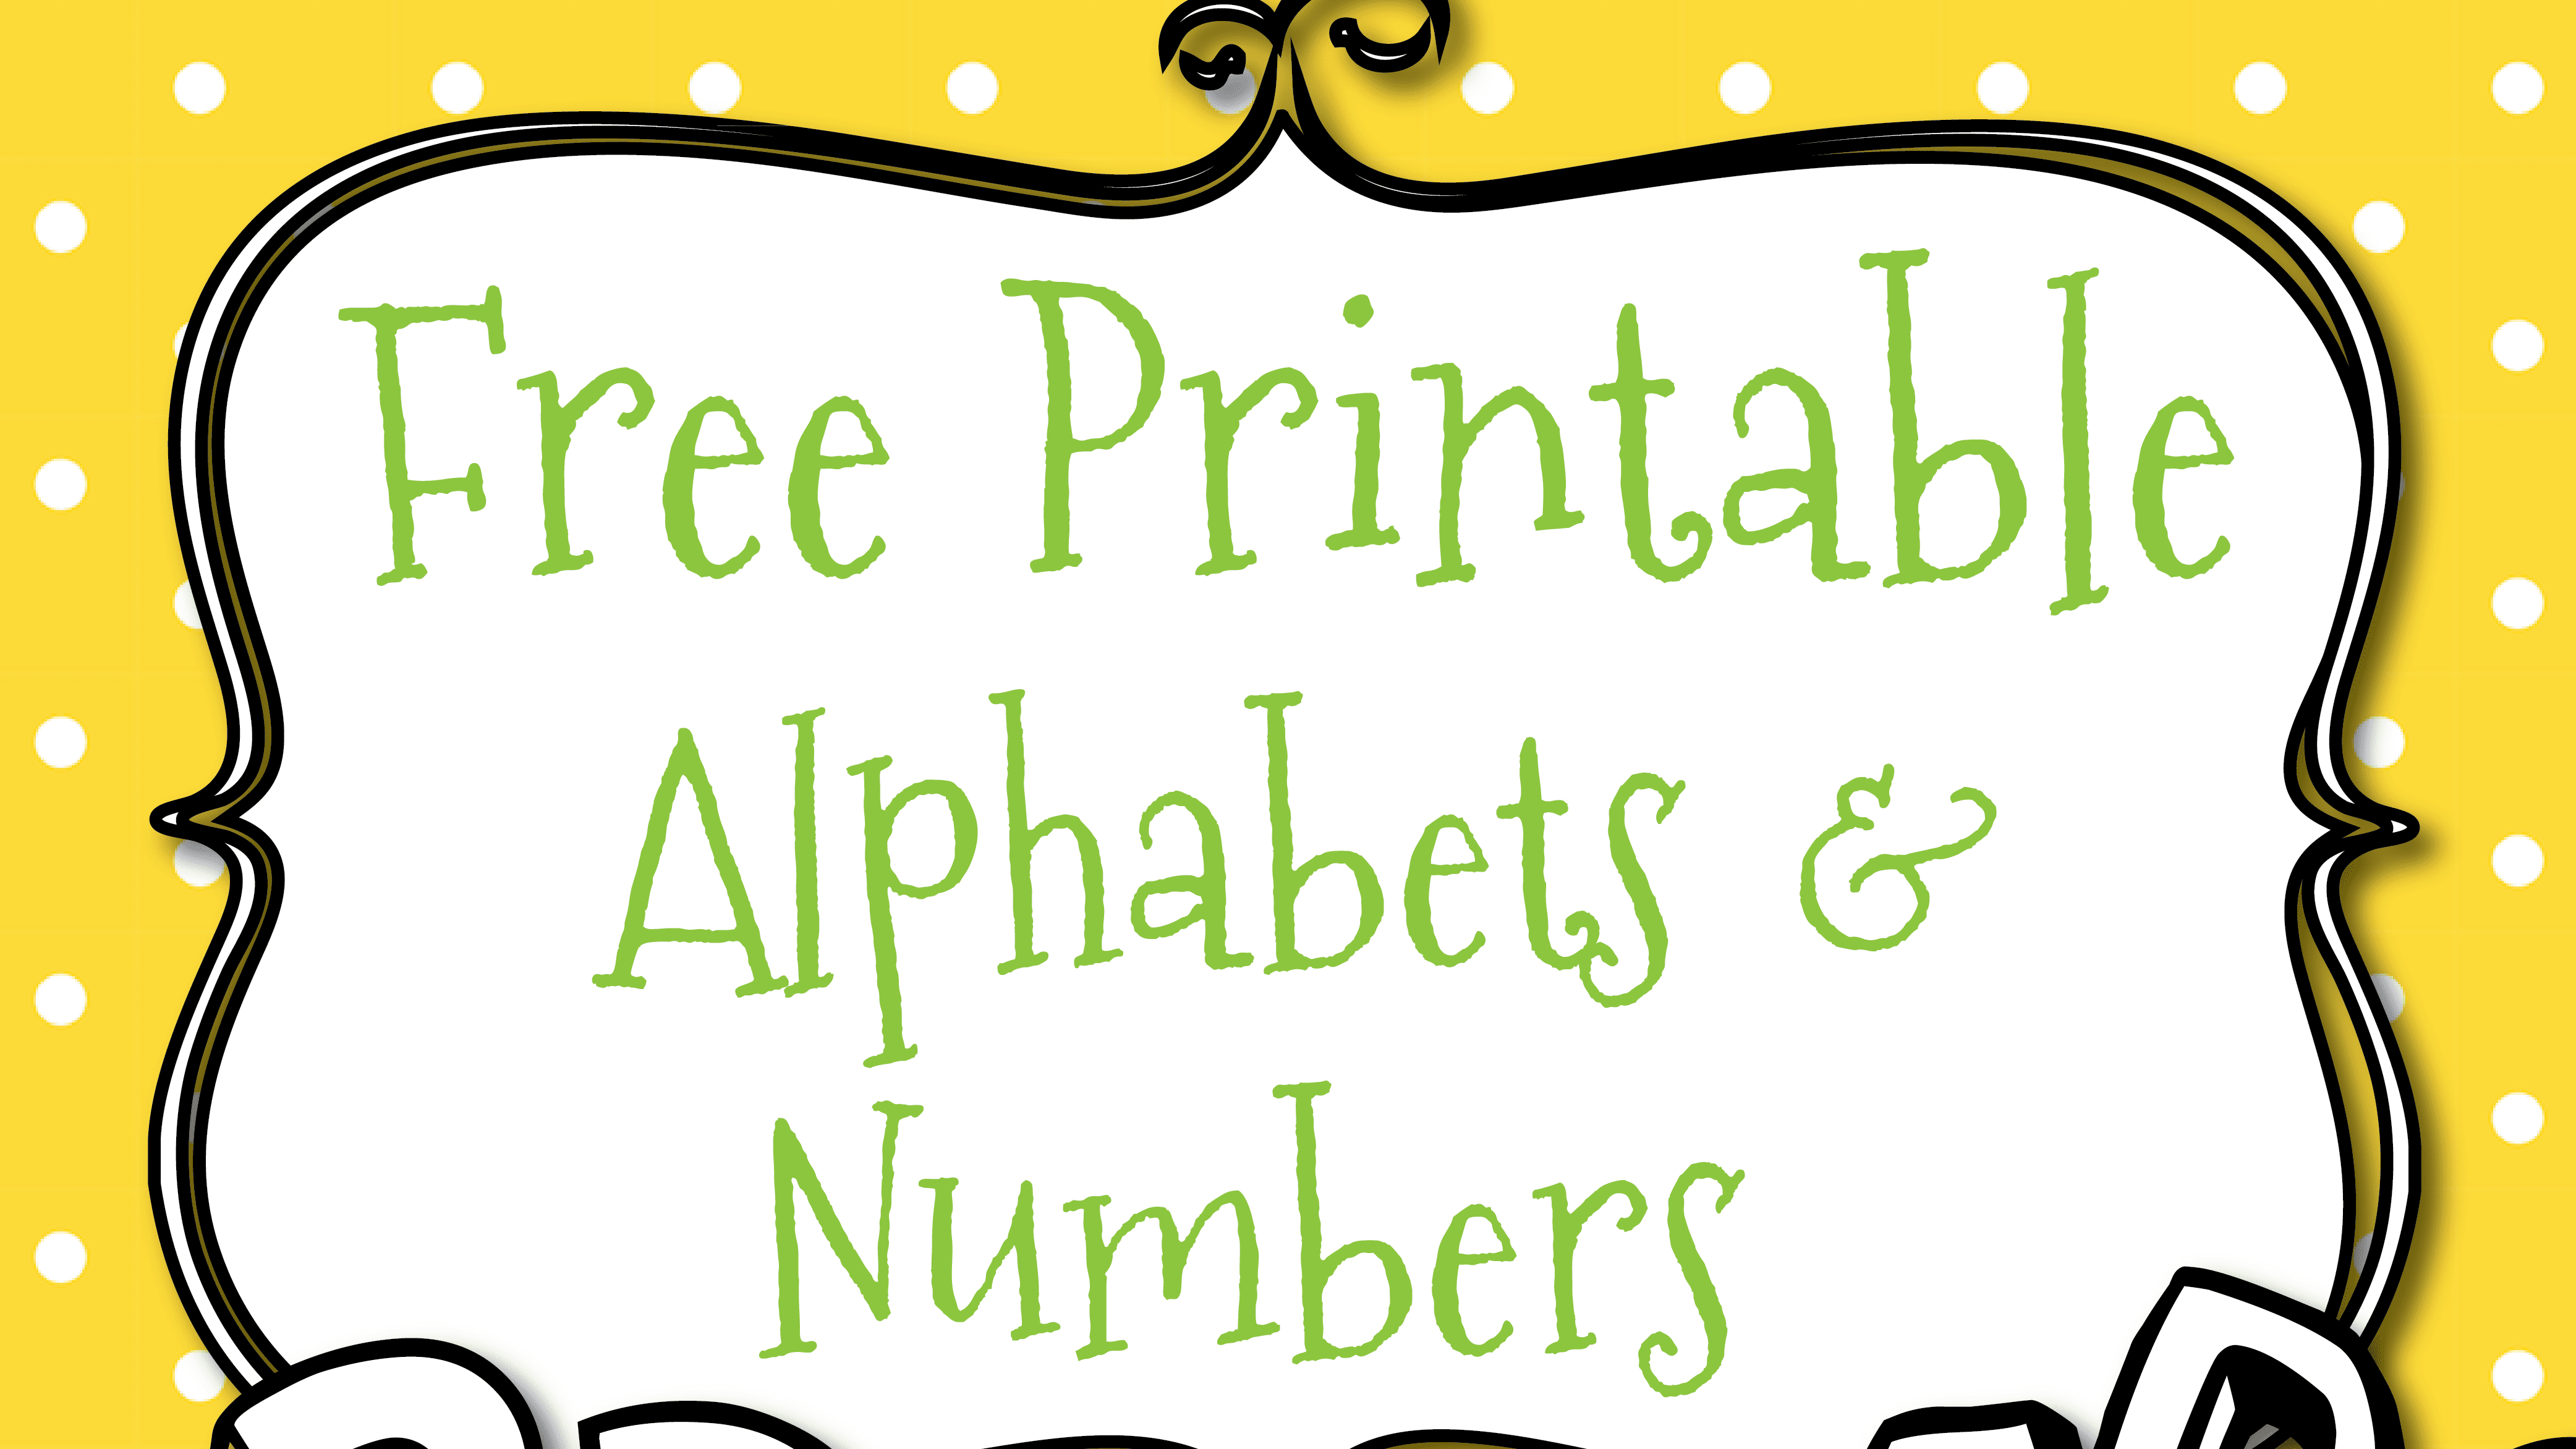 Free Printable Letters And Numbers For Crafts - Printable Alphabet Letters Free Download